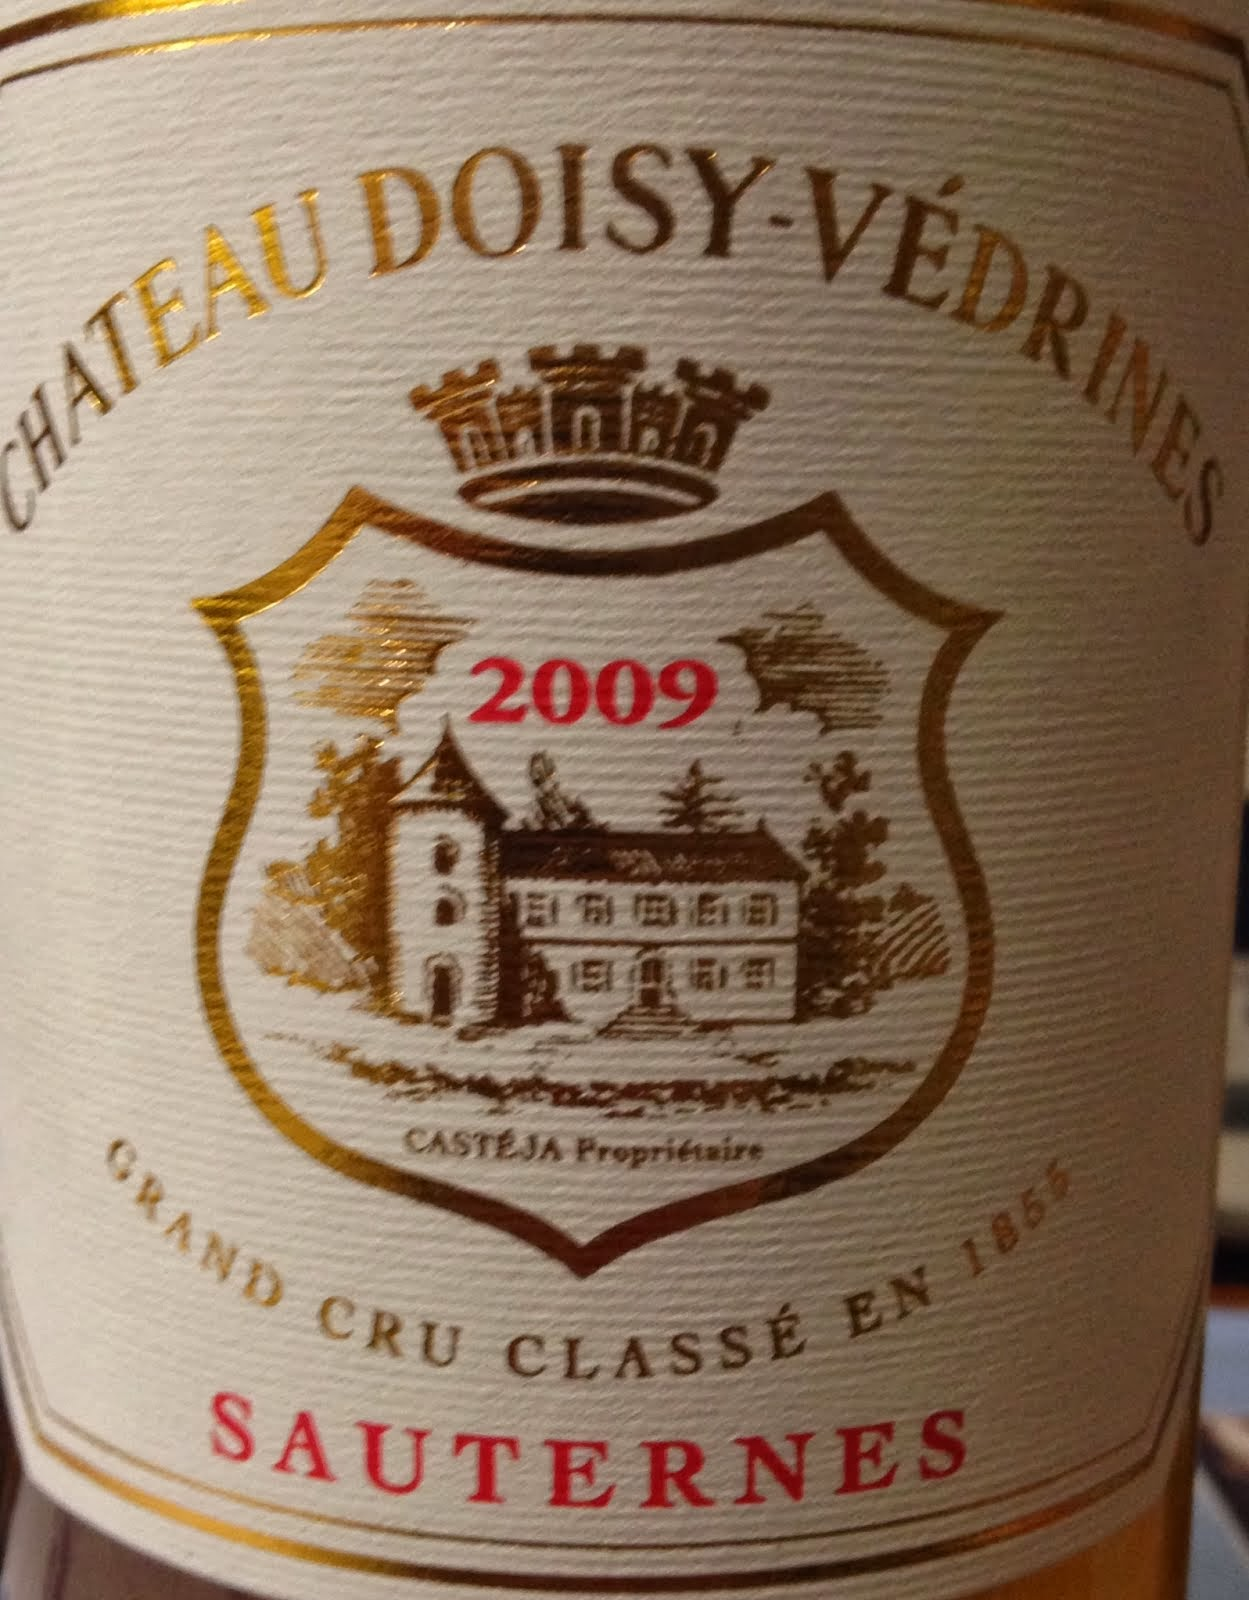 We Have Not Seen A Sauternes Value Like This In Long Time